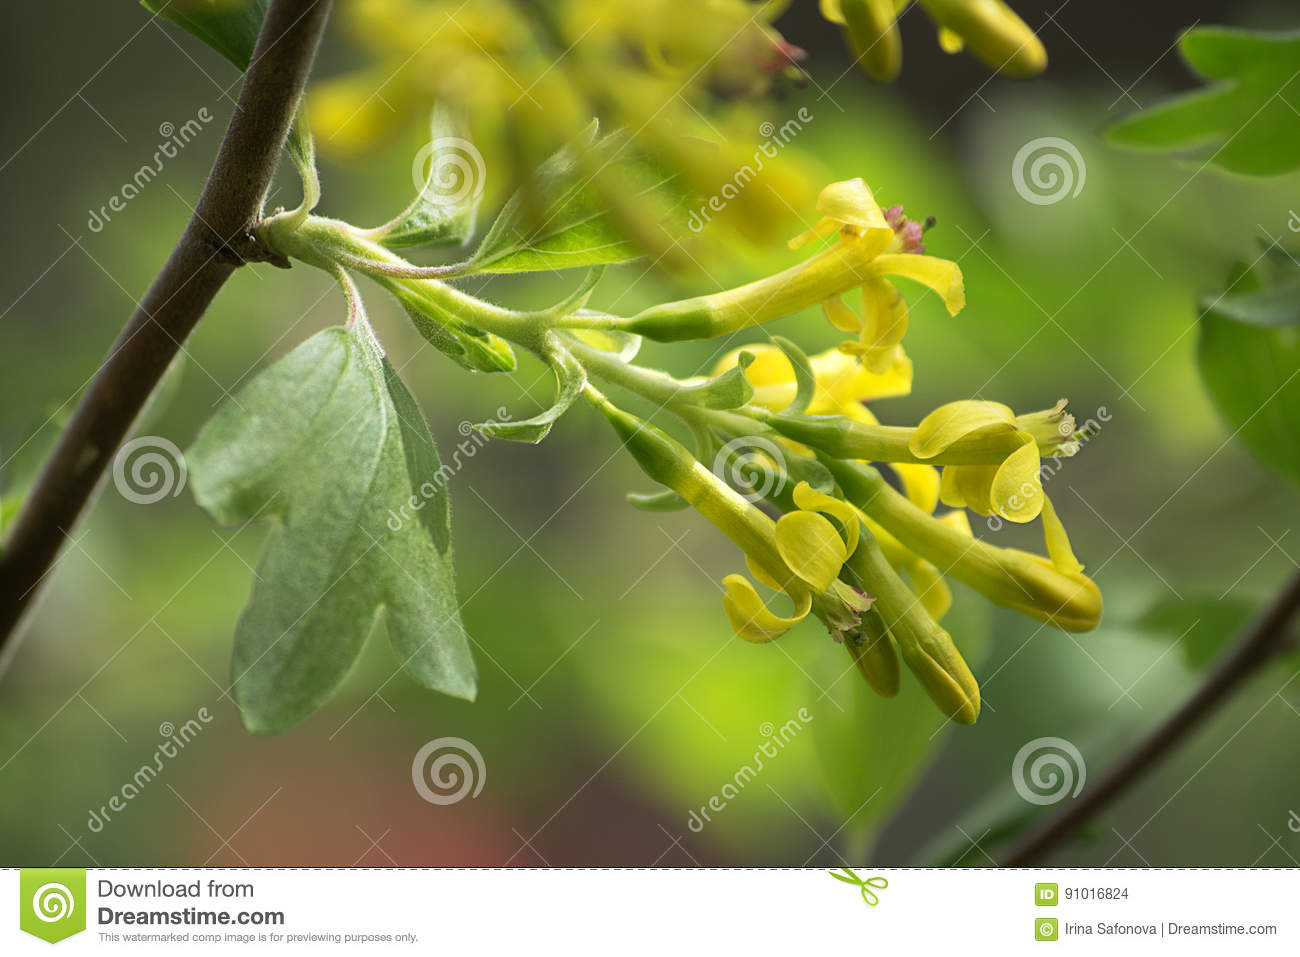 Flowering Of Golden Currant Other Name Ribes Aureum Stock Photo